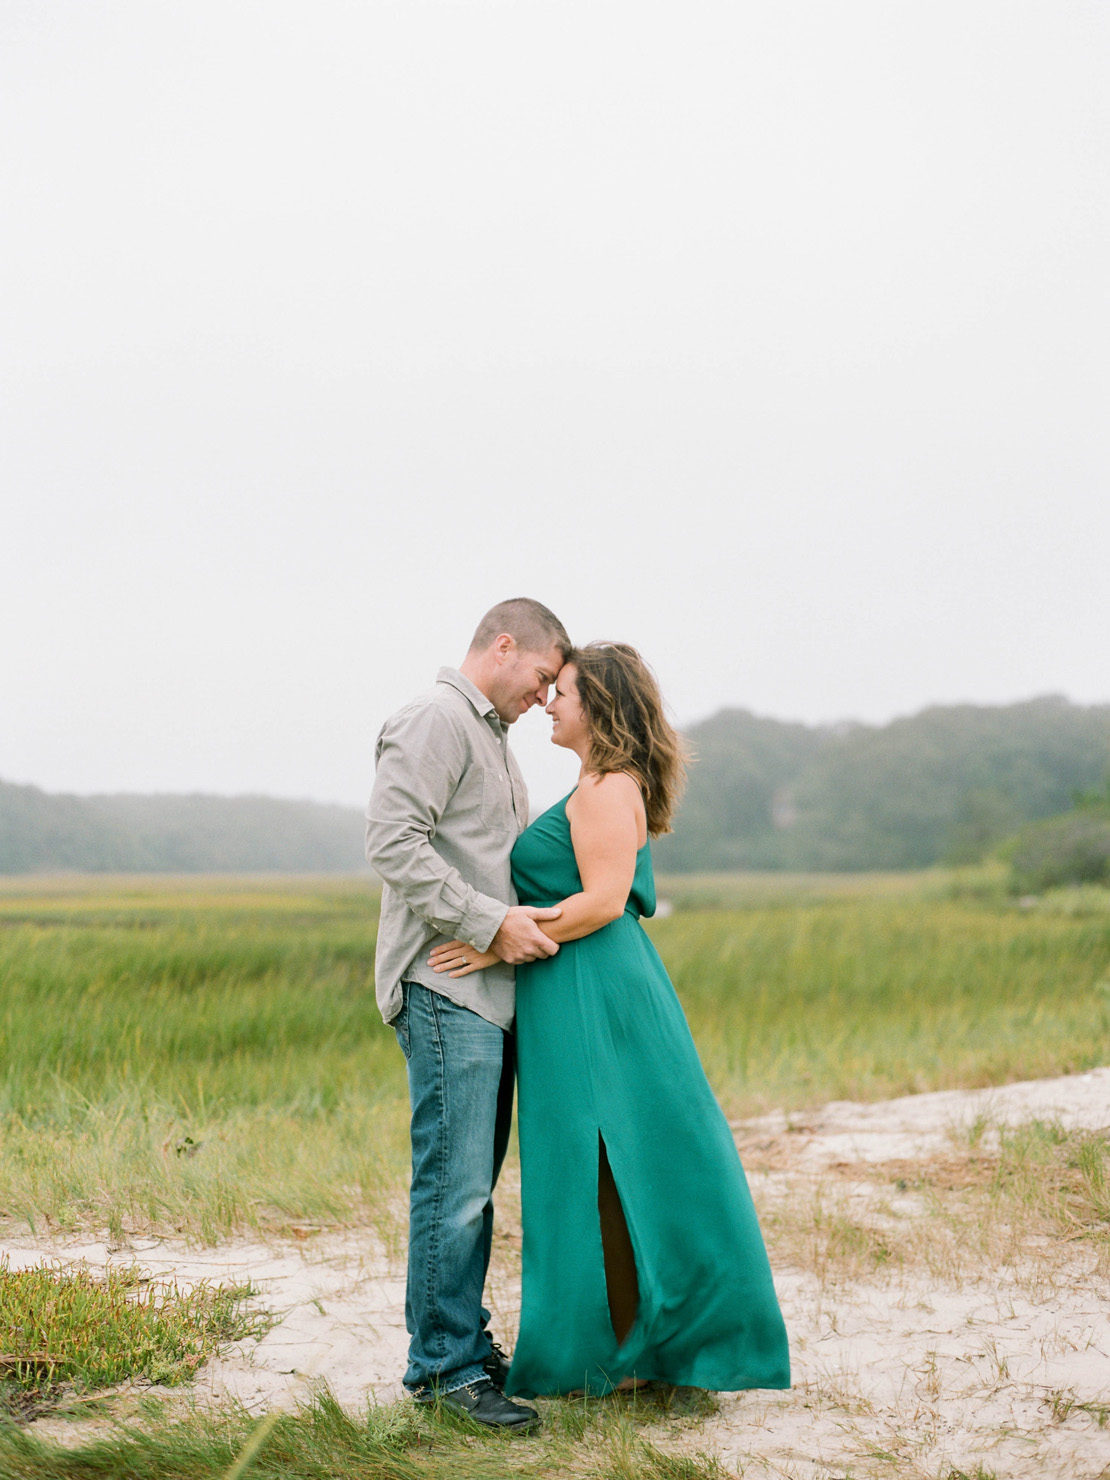 10_misty_autumn_engagement_session_old_silver_marsh_cape_cod_fine_art_b_wedding_photography